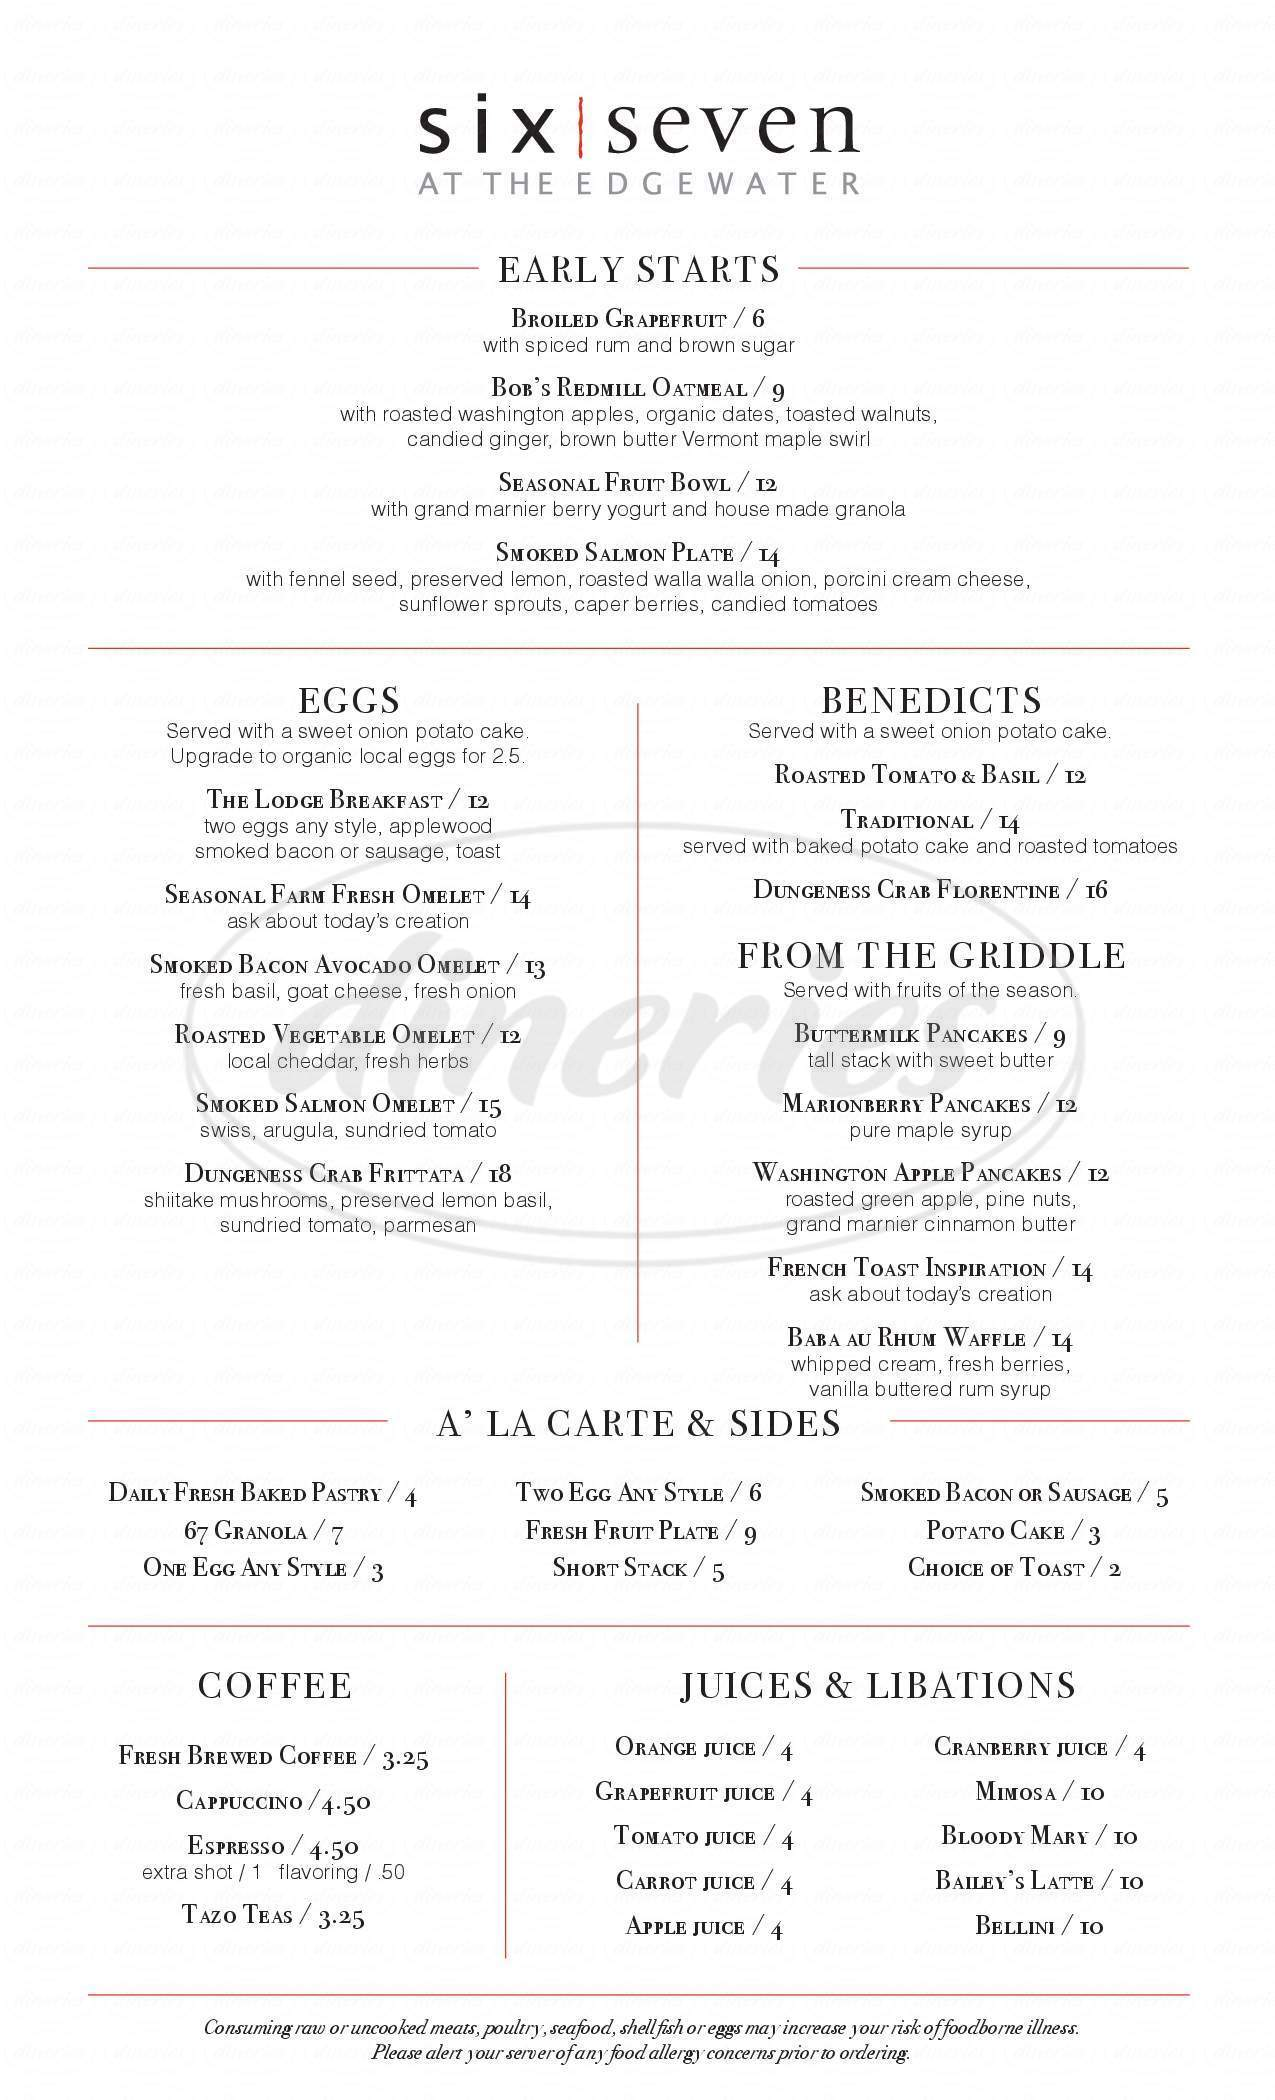 menu for Six Seven Restaurant